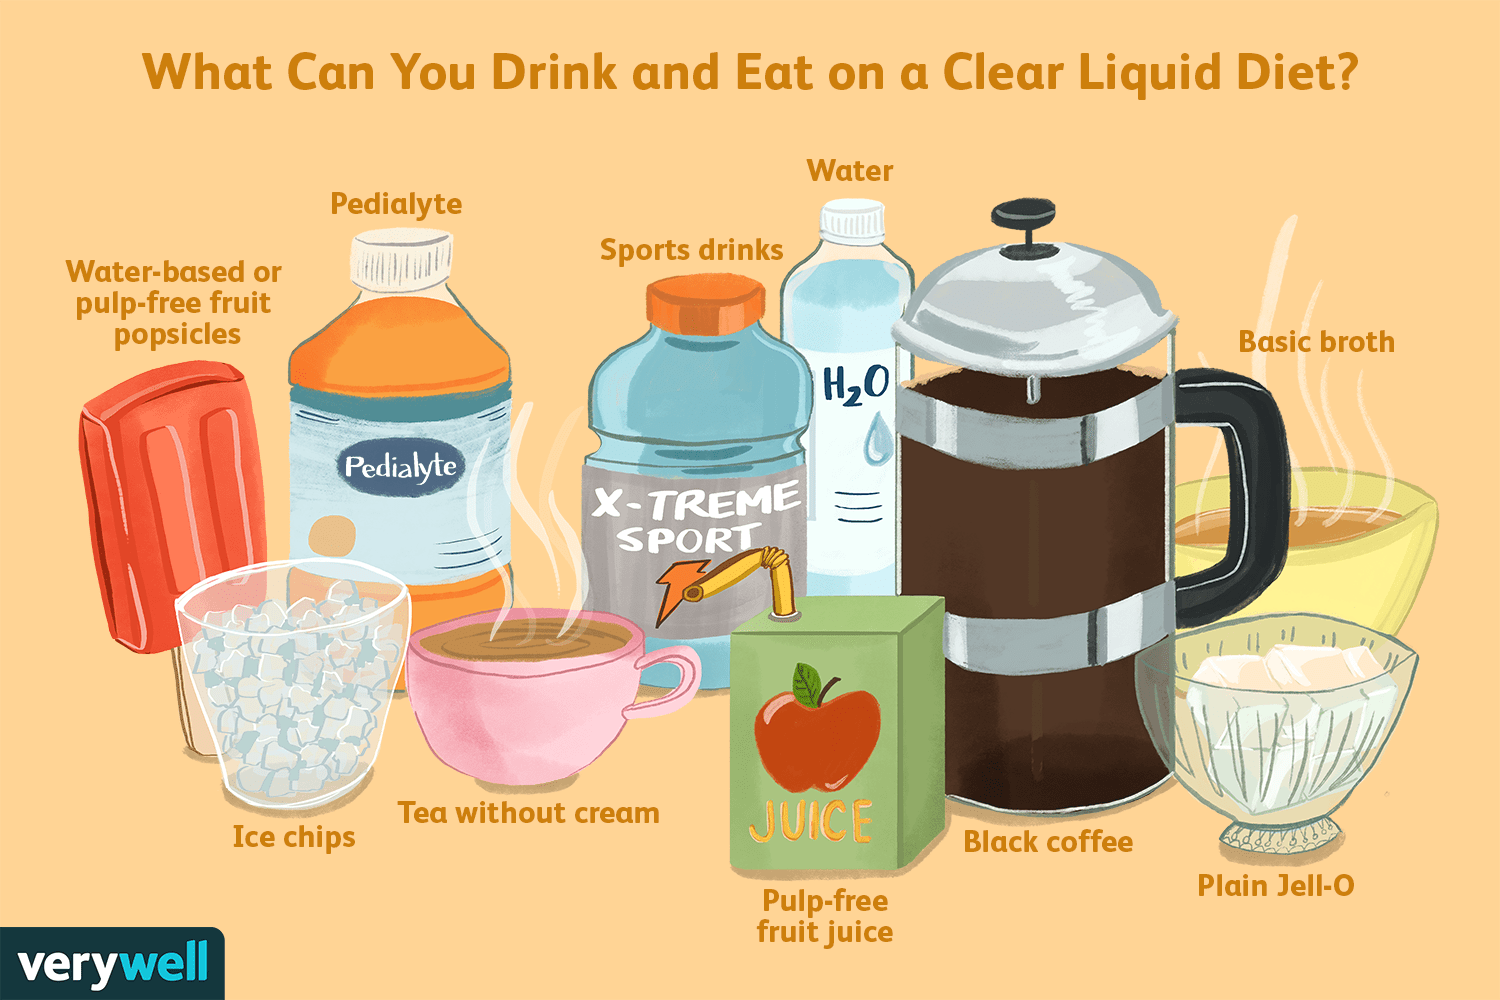 Overview of a Clear Liquid Diet